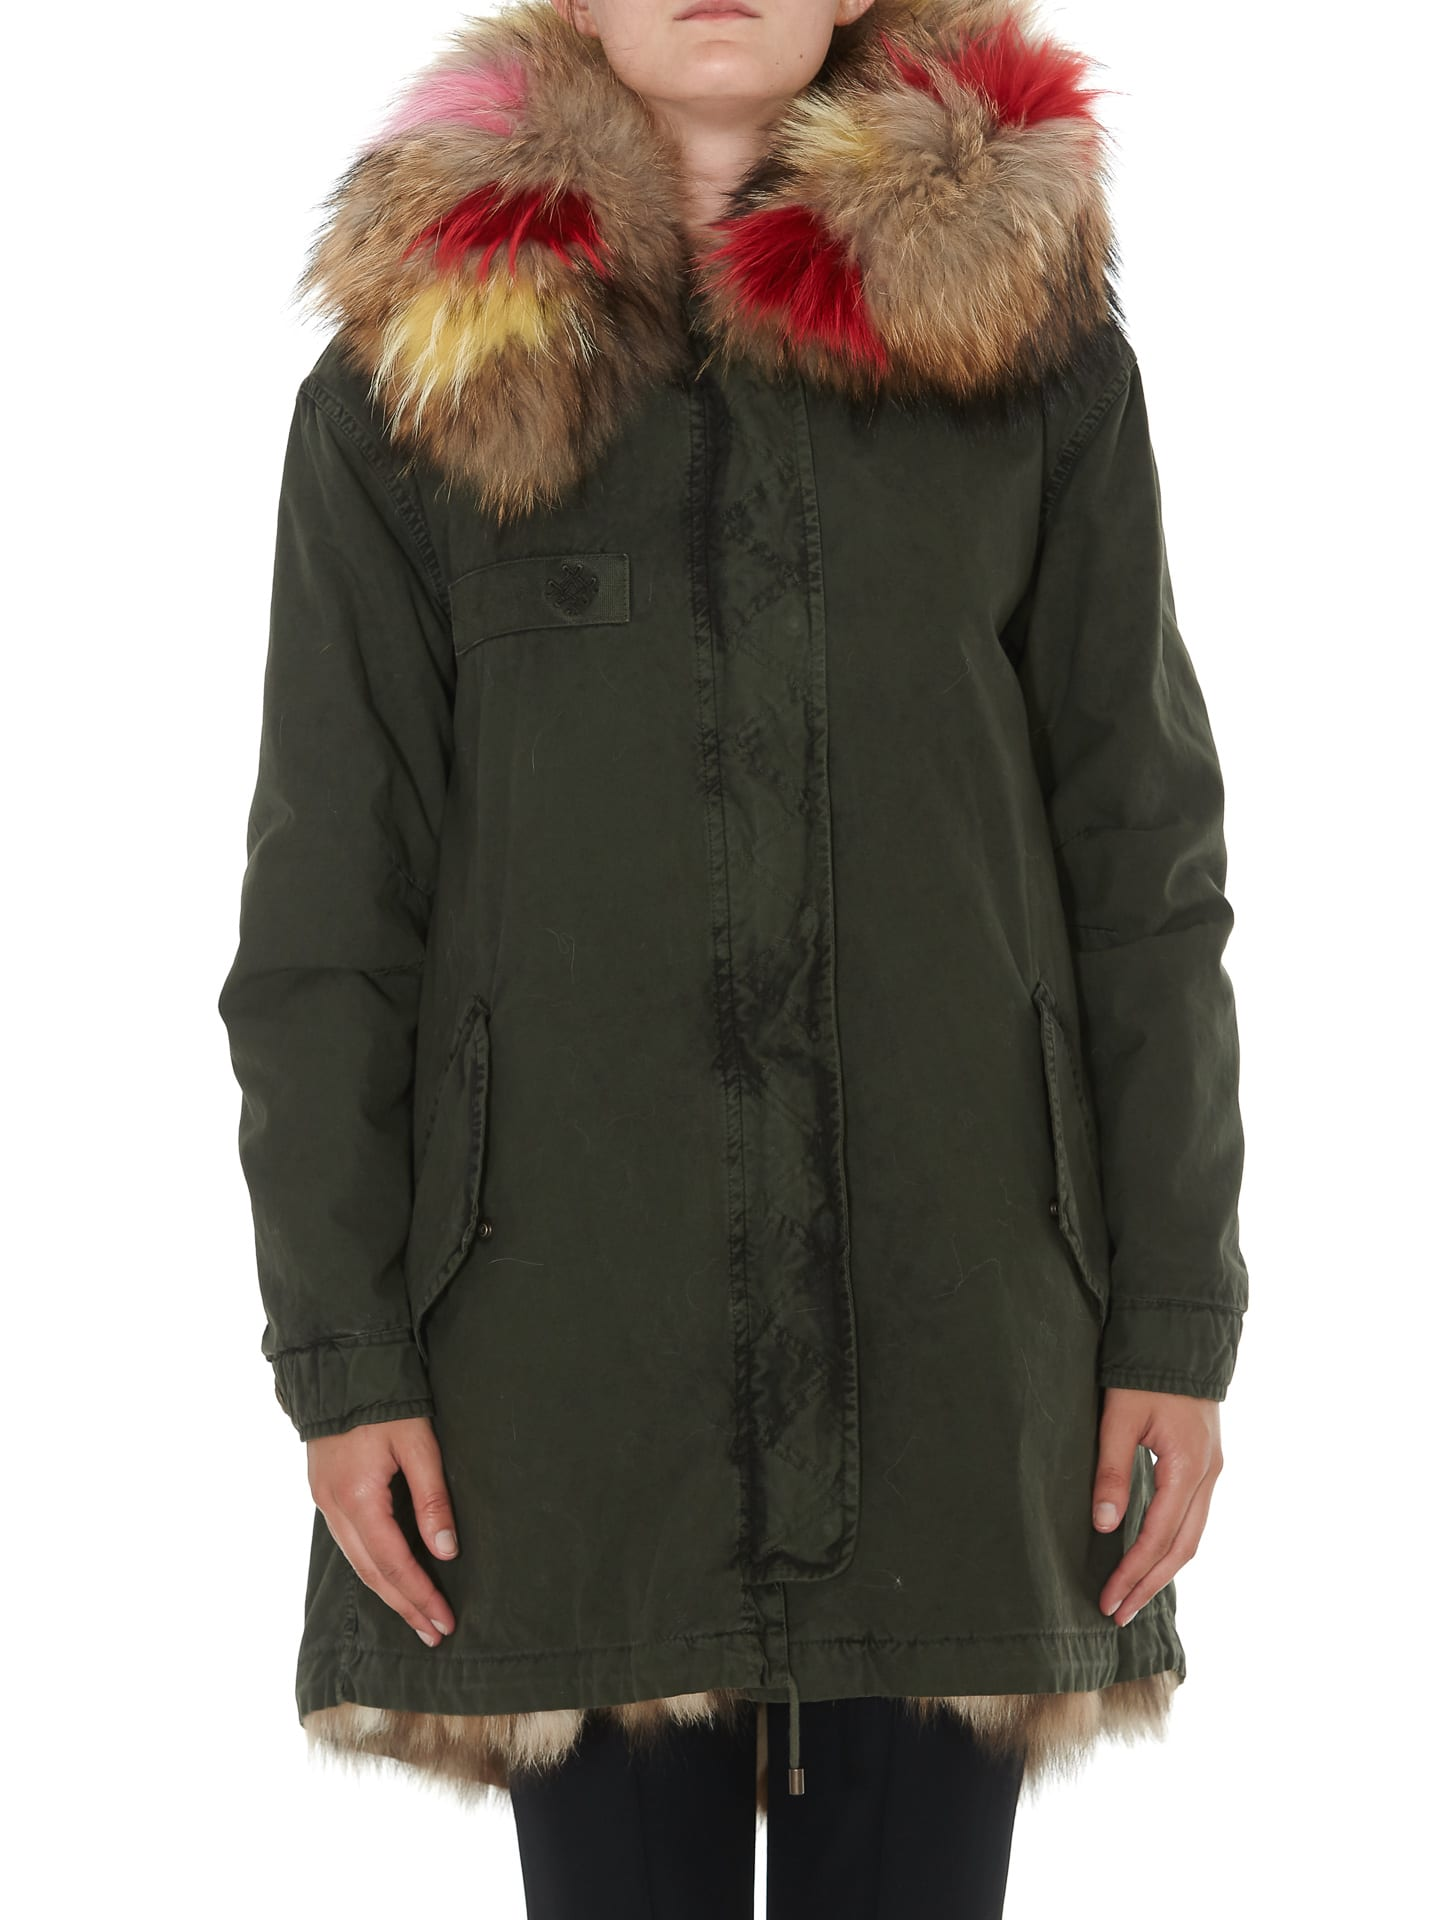 Photo of  Mr & Mrs Italy A-line Parka- shop Mr & Mrs Italy jackets online sales